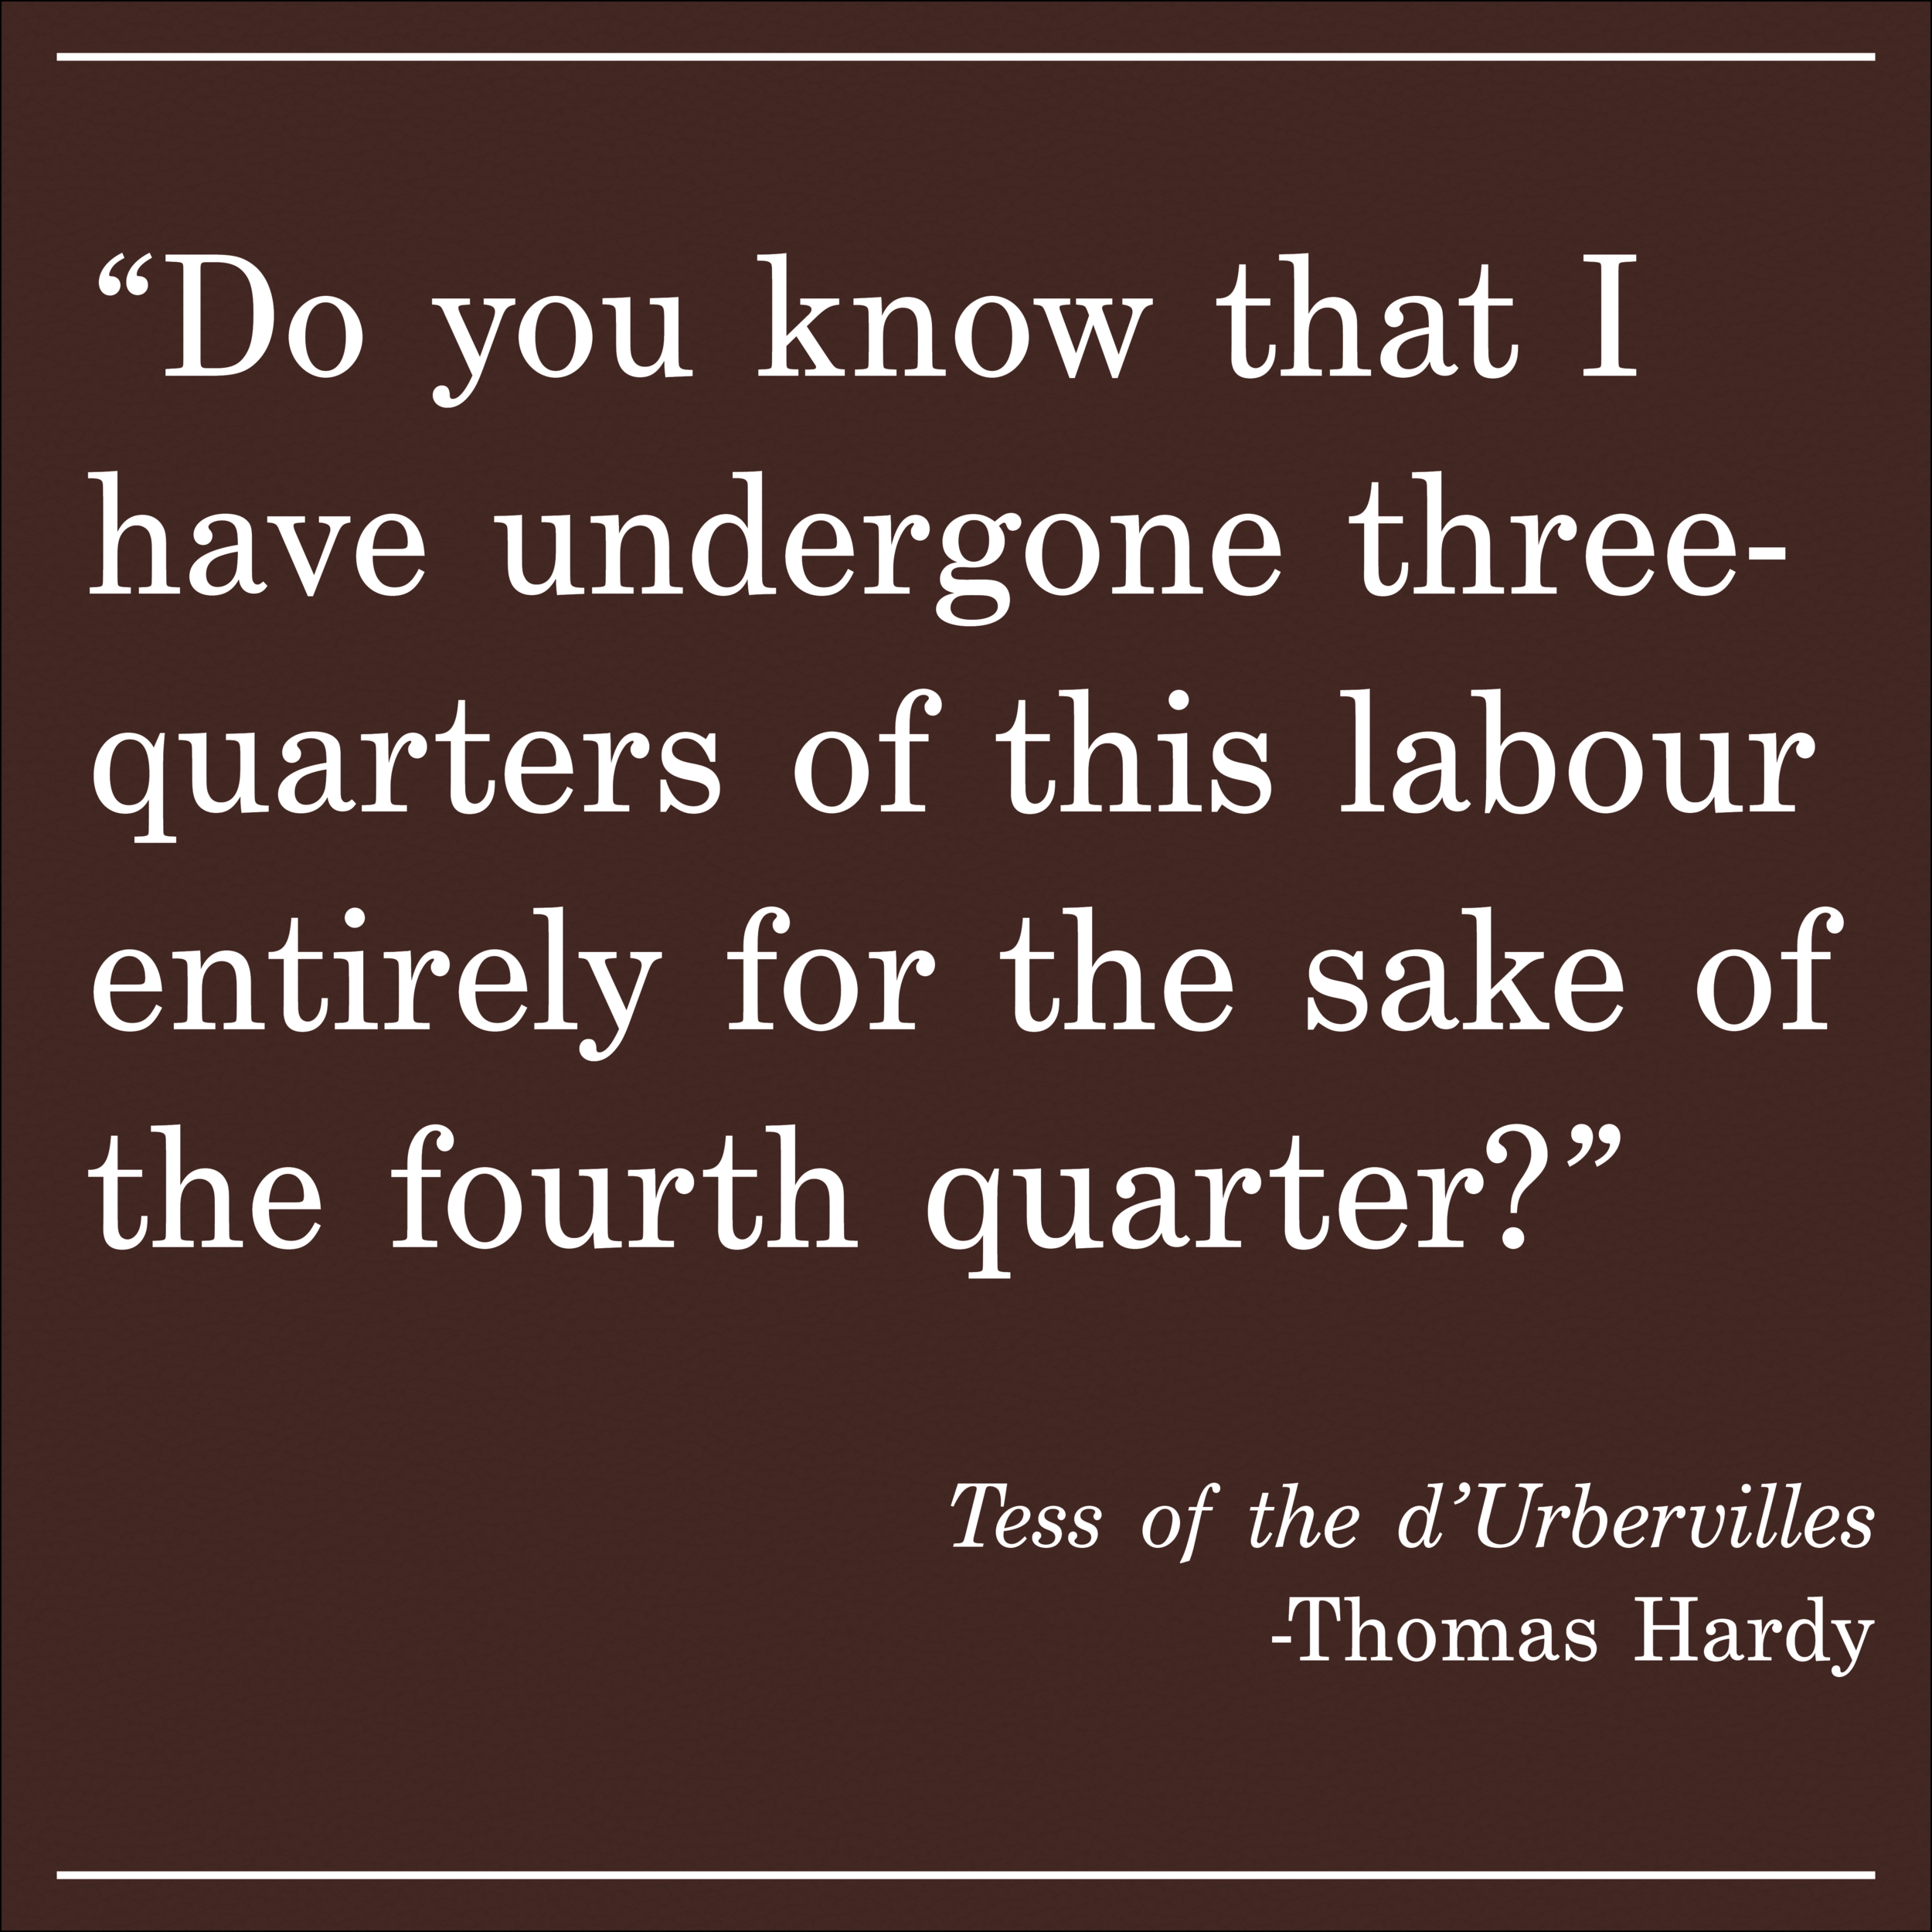 Daily Quote Tess of the d'Urbervilles  by Thomas Hardy